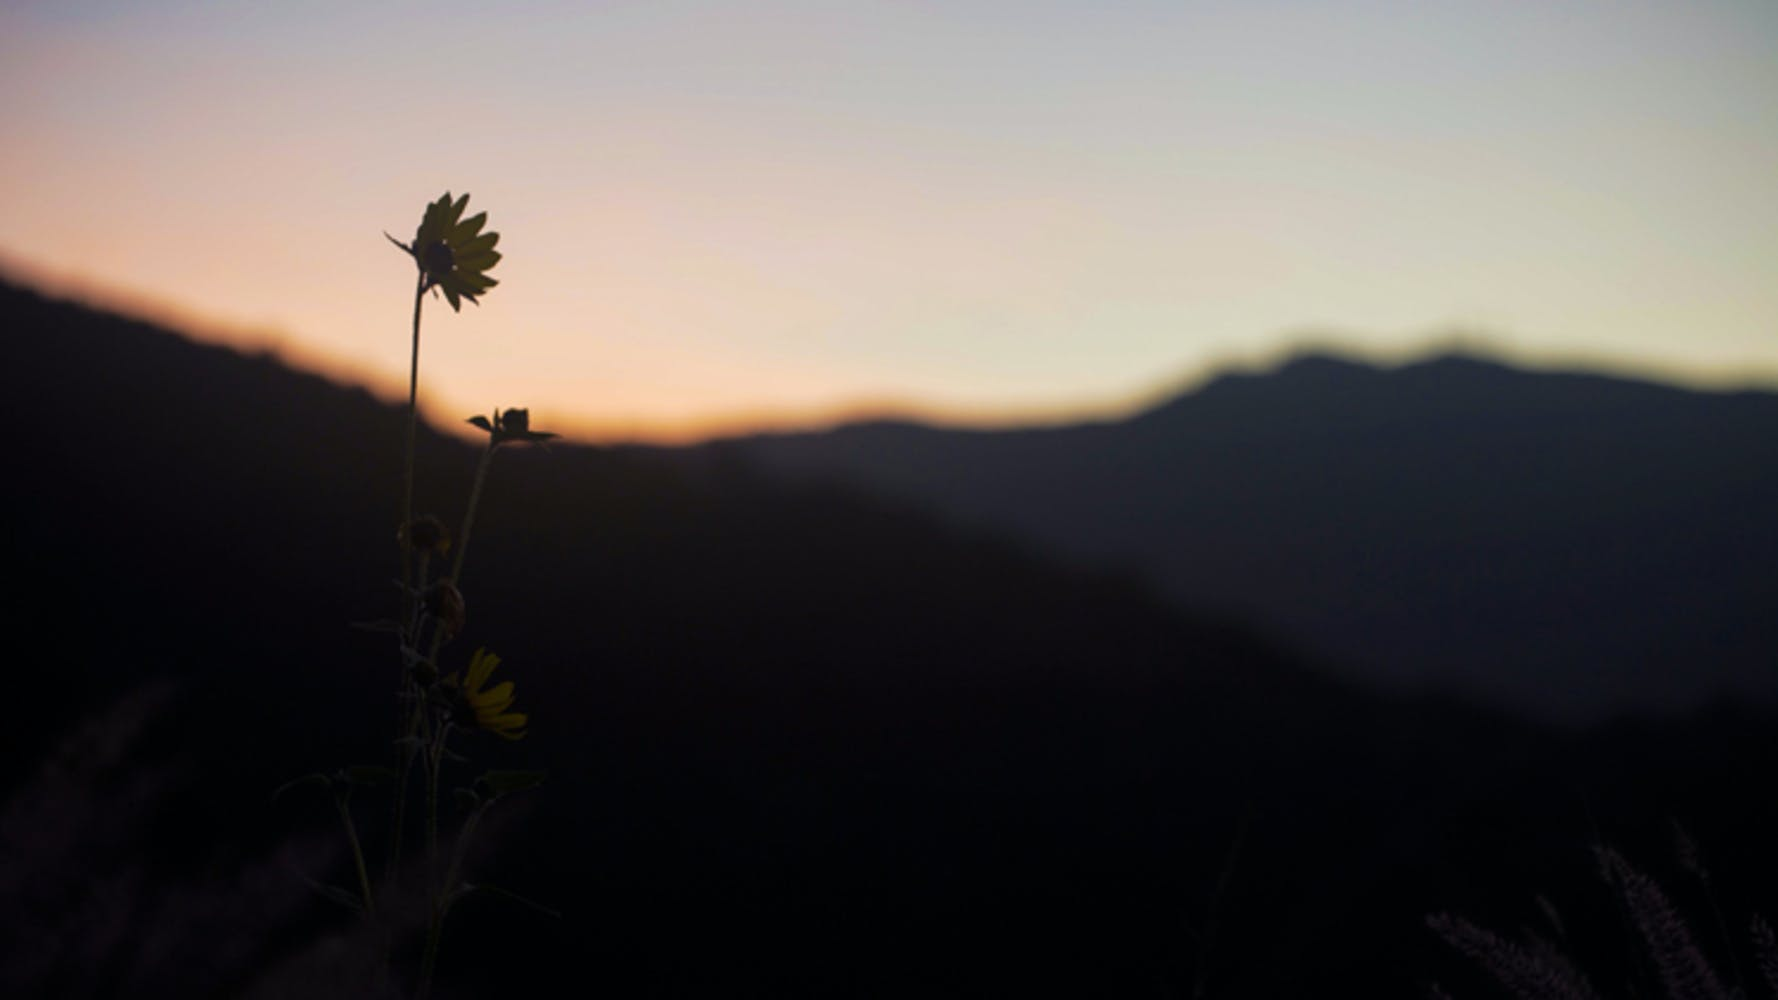 Image of flower silhouetted in foreground with mountain in background